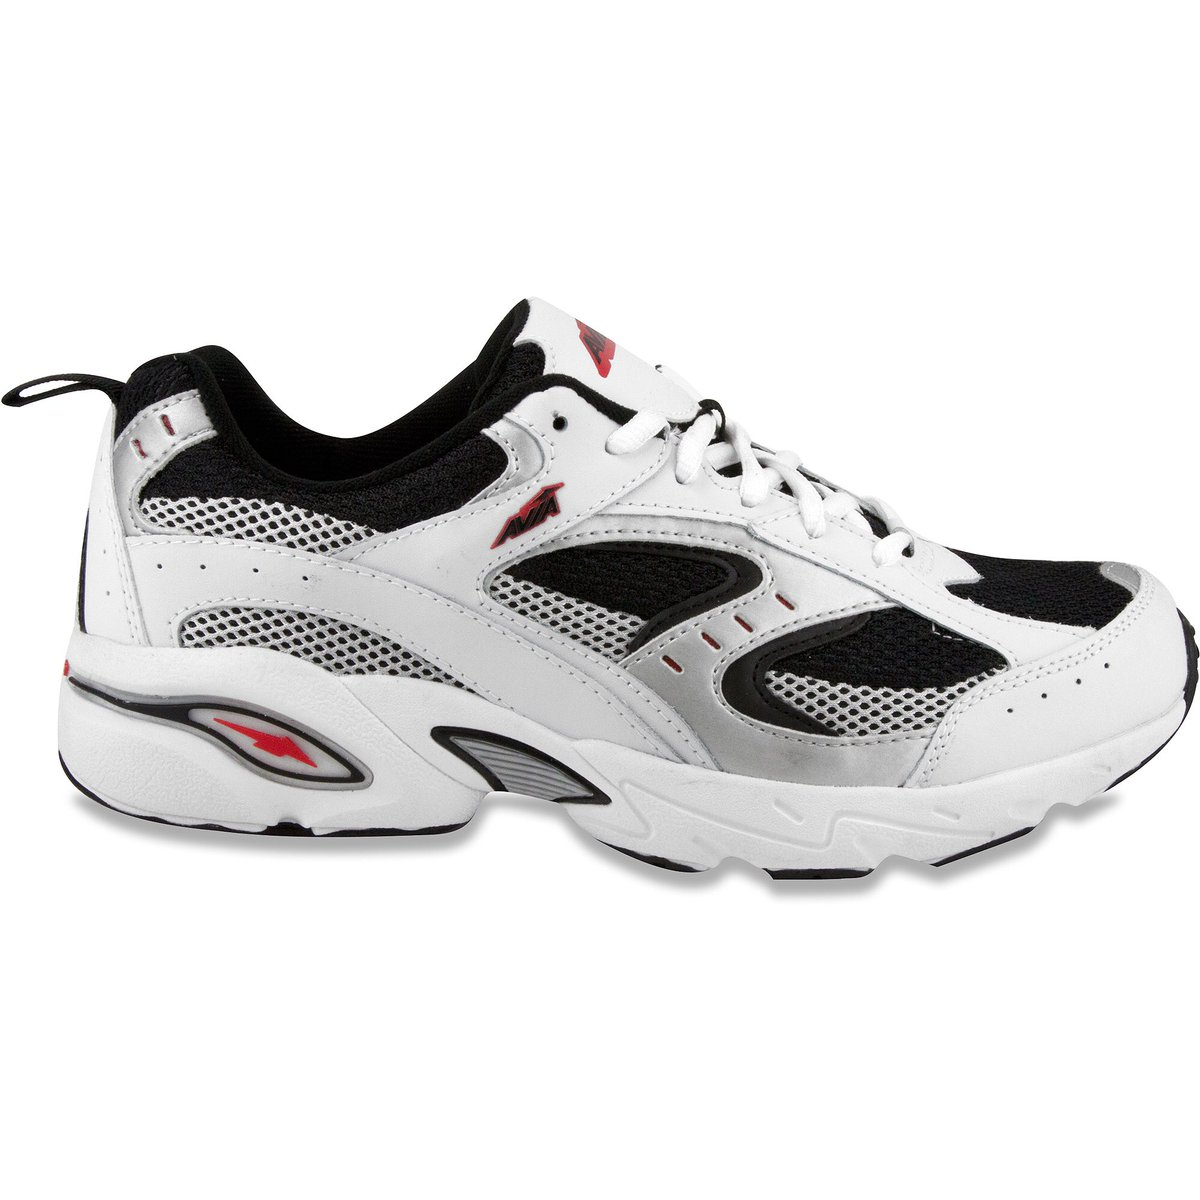 Fam straight up stole the design of Avia and jacked the price from $16 to $400<br>http://pic.twitter.com/9scvLBWCau